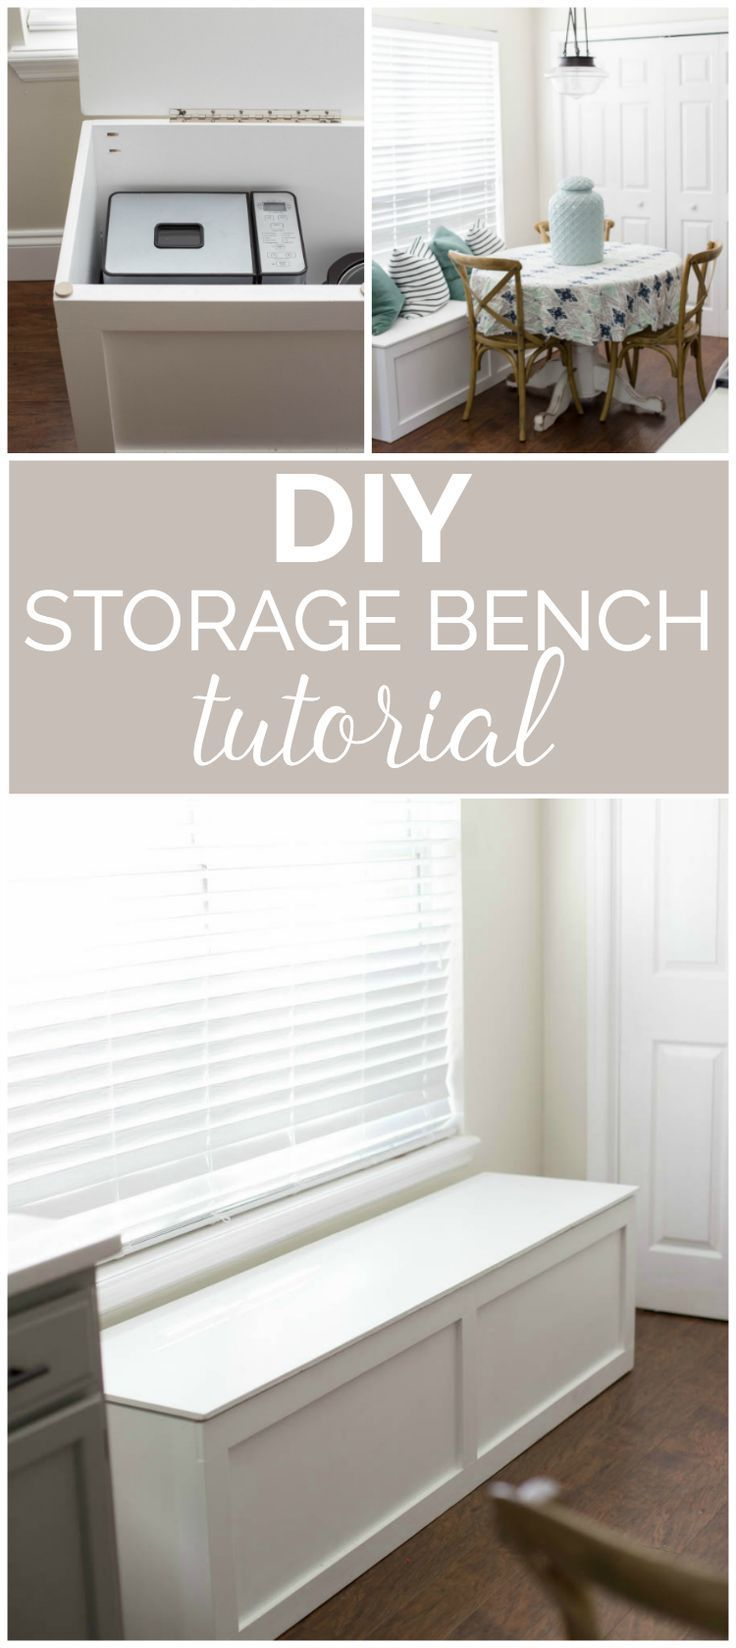 How to Build a Window Seat with Storage - DIY Tutorial | Diy storage ...